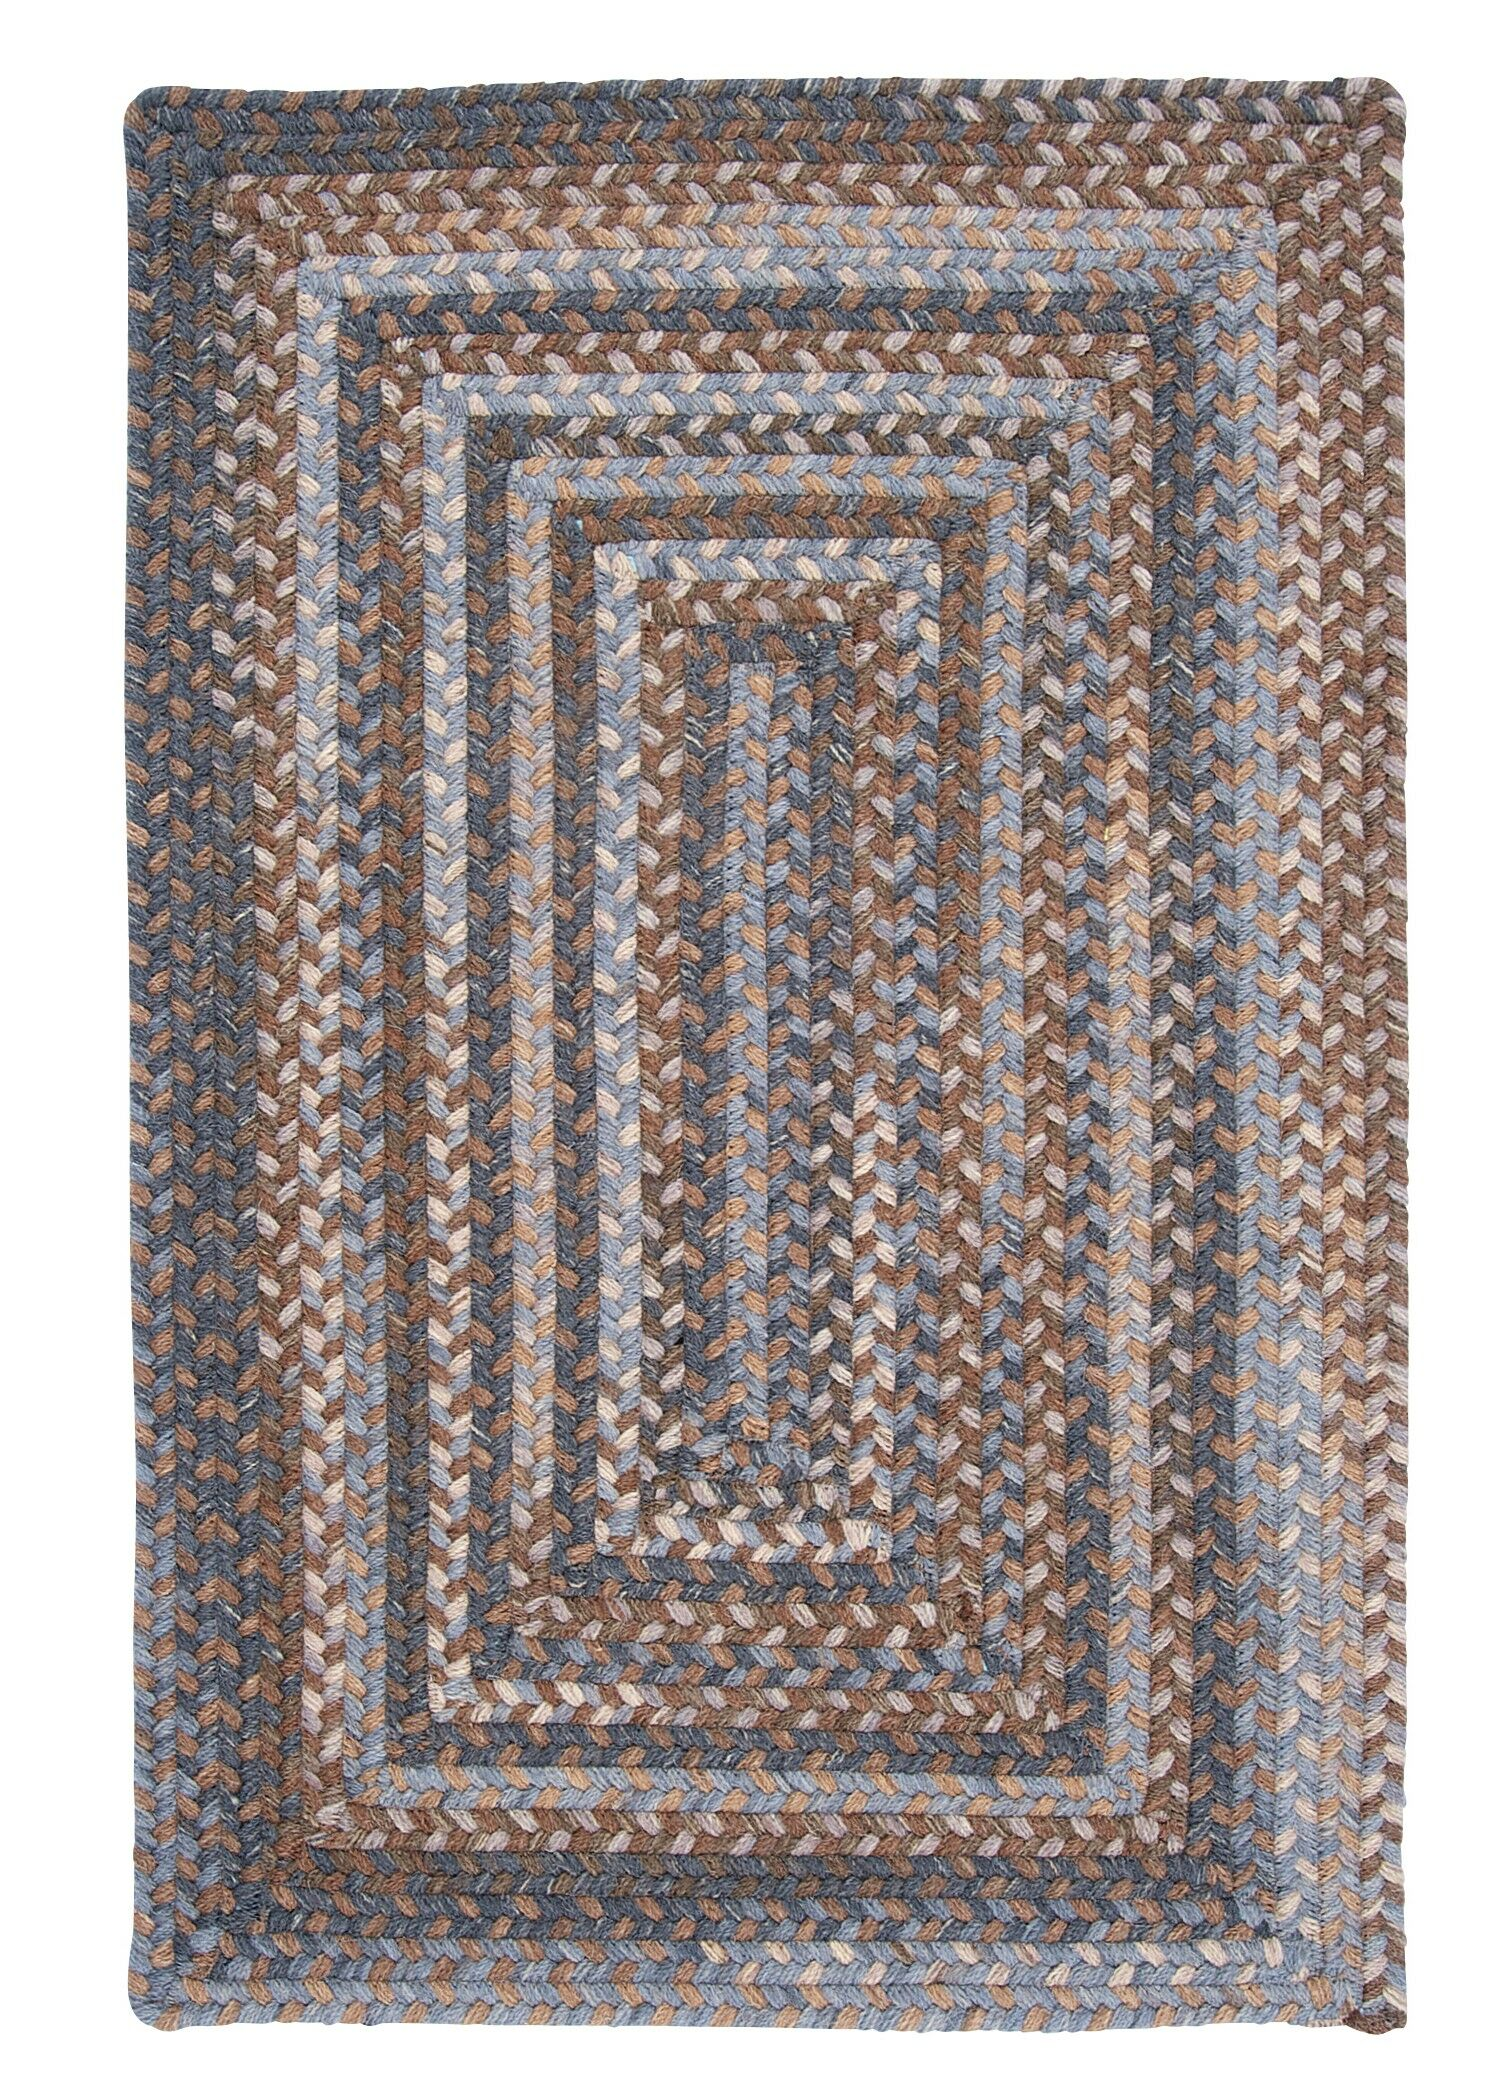 Gloucester Graphite Braided Brown/Tan Area Rug Rug Size: Square 6'